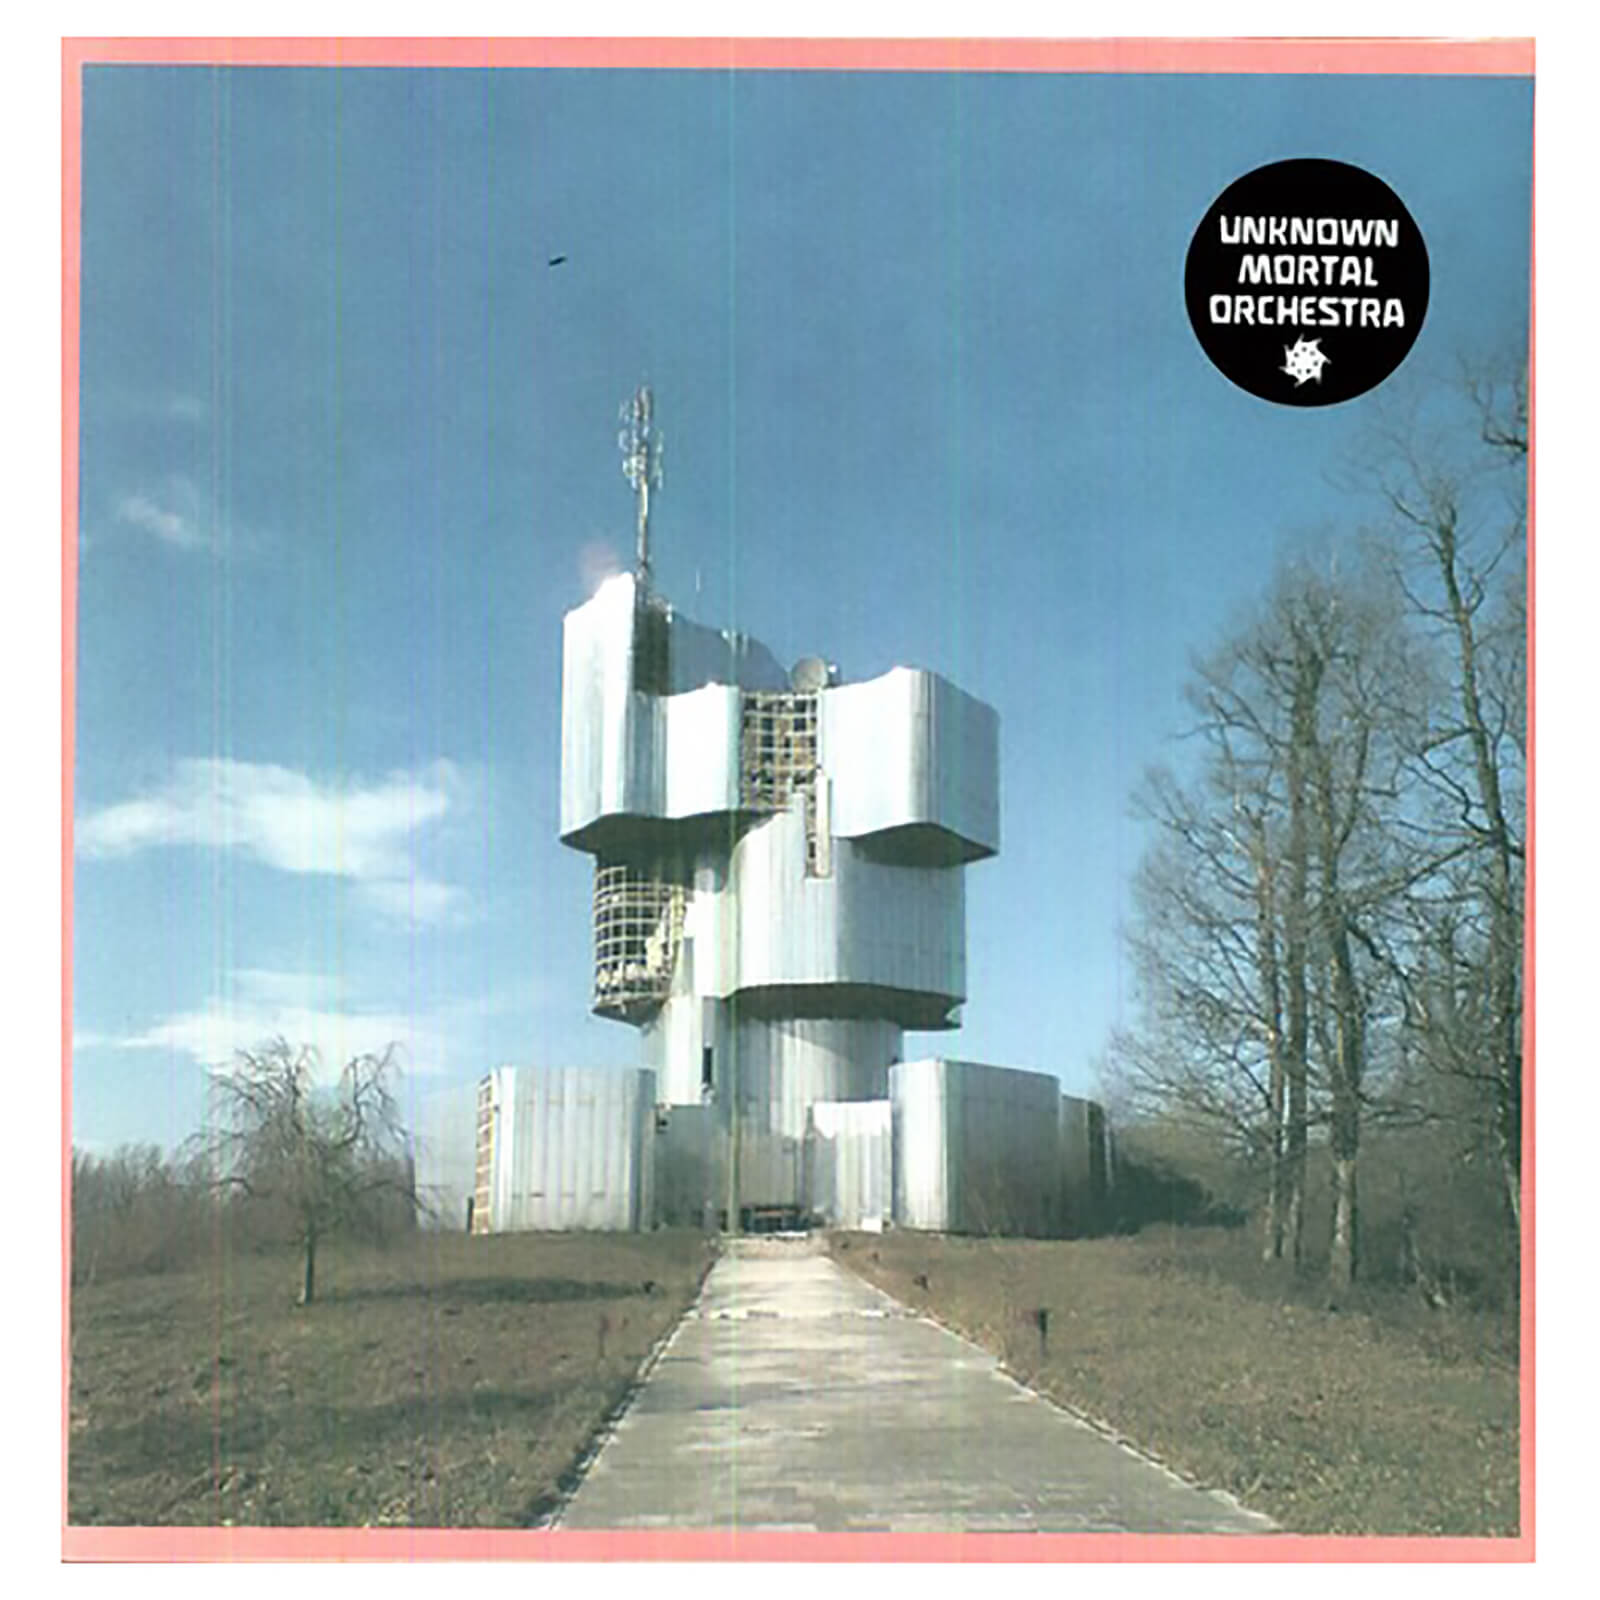 Unknown Mortal Orchestra - Vinyl